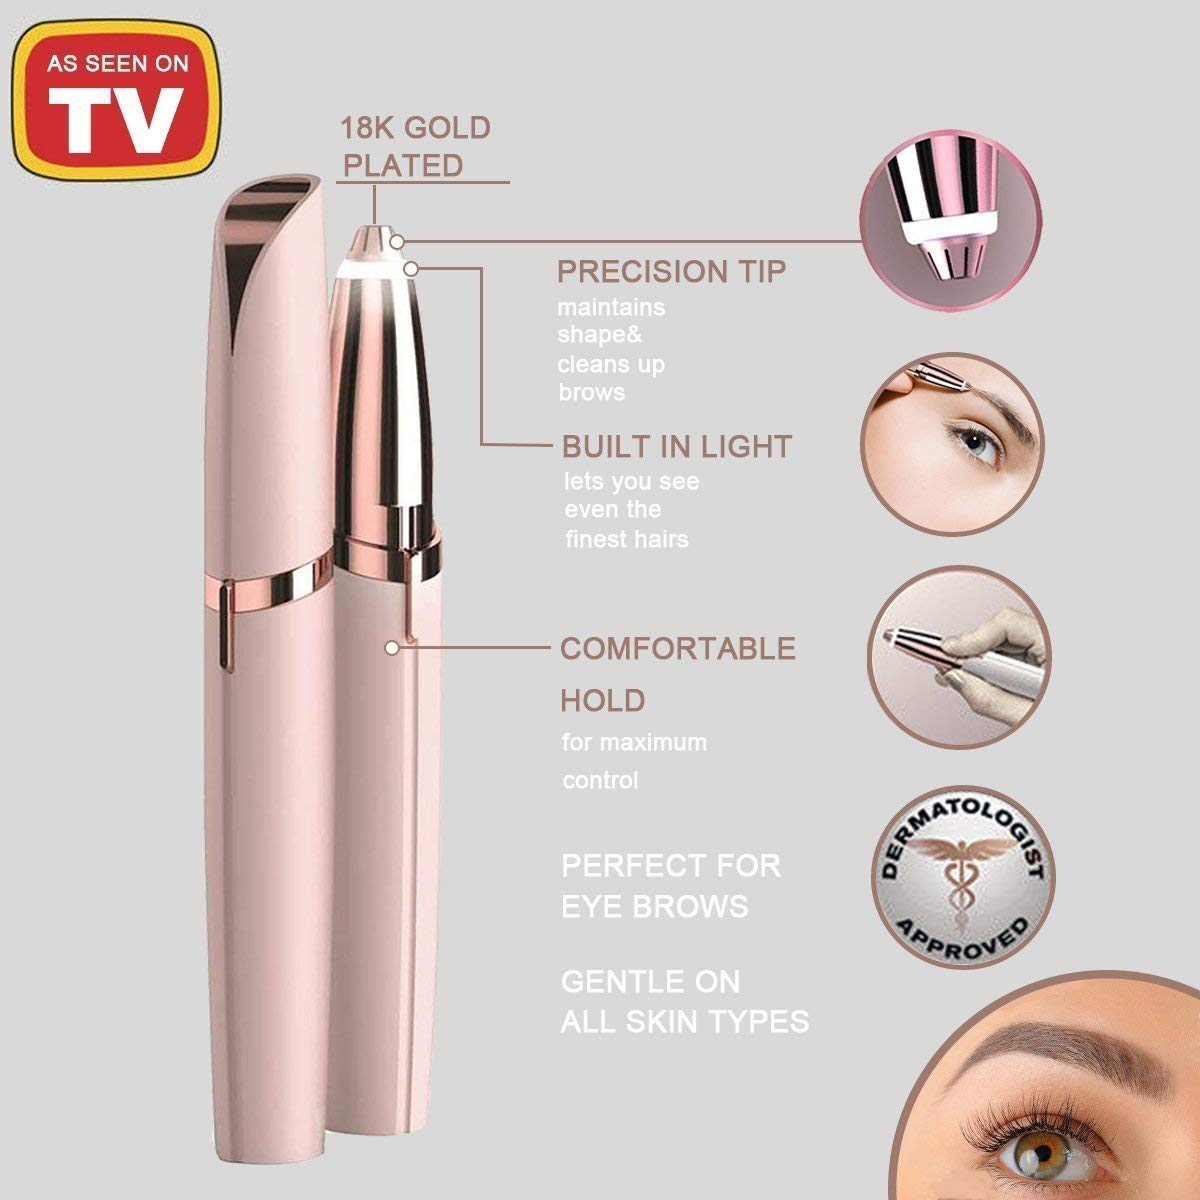 Eyebrow Hair Remover,Uccdo Flawless Brows,Electric Repairing Eyebrow,Eye-brow Trimmer As Seen On TV (White)